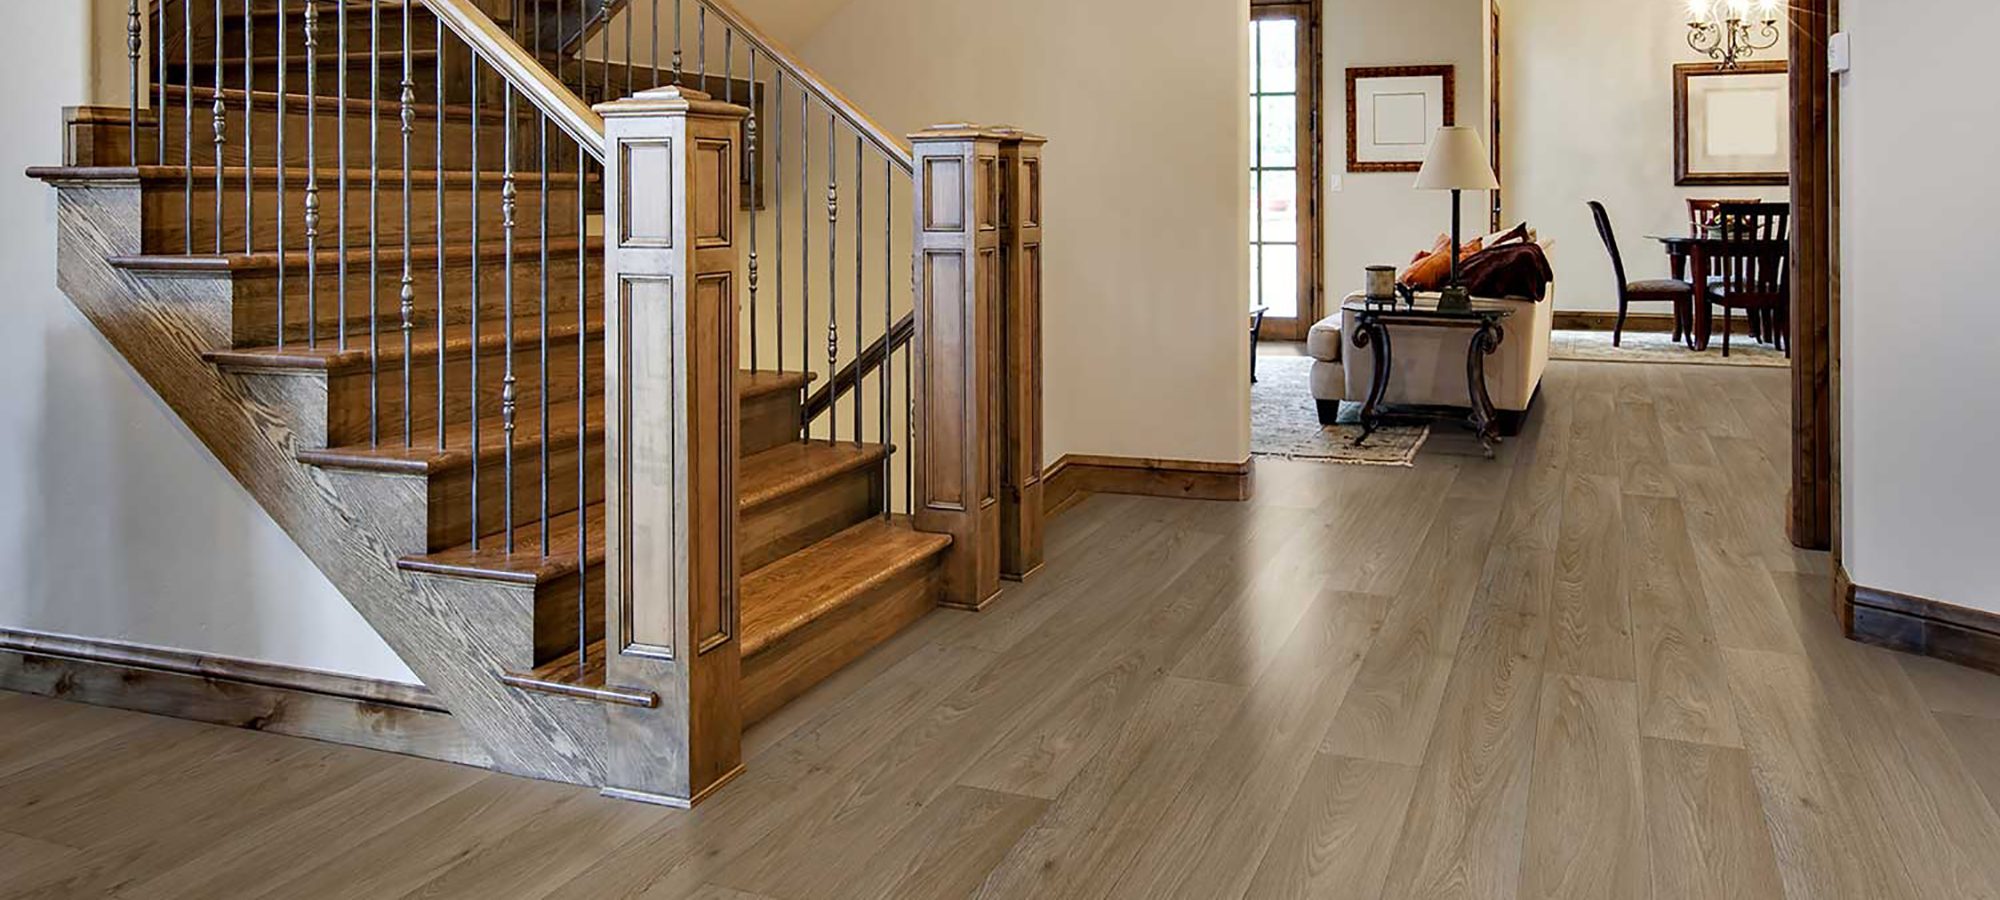 Vinyl is an excellent resilient, versatile and affordable flooring options for your home; serving the Portland, Oregon Metro area.